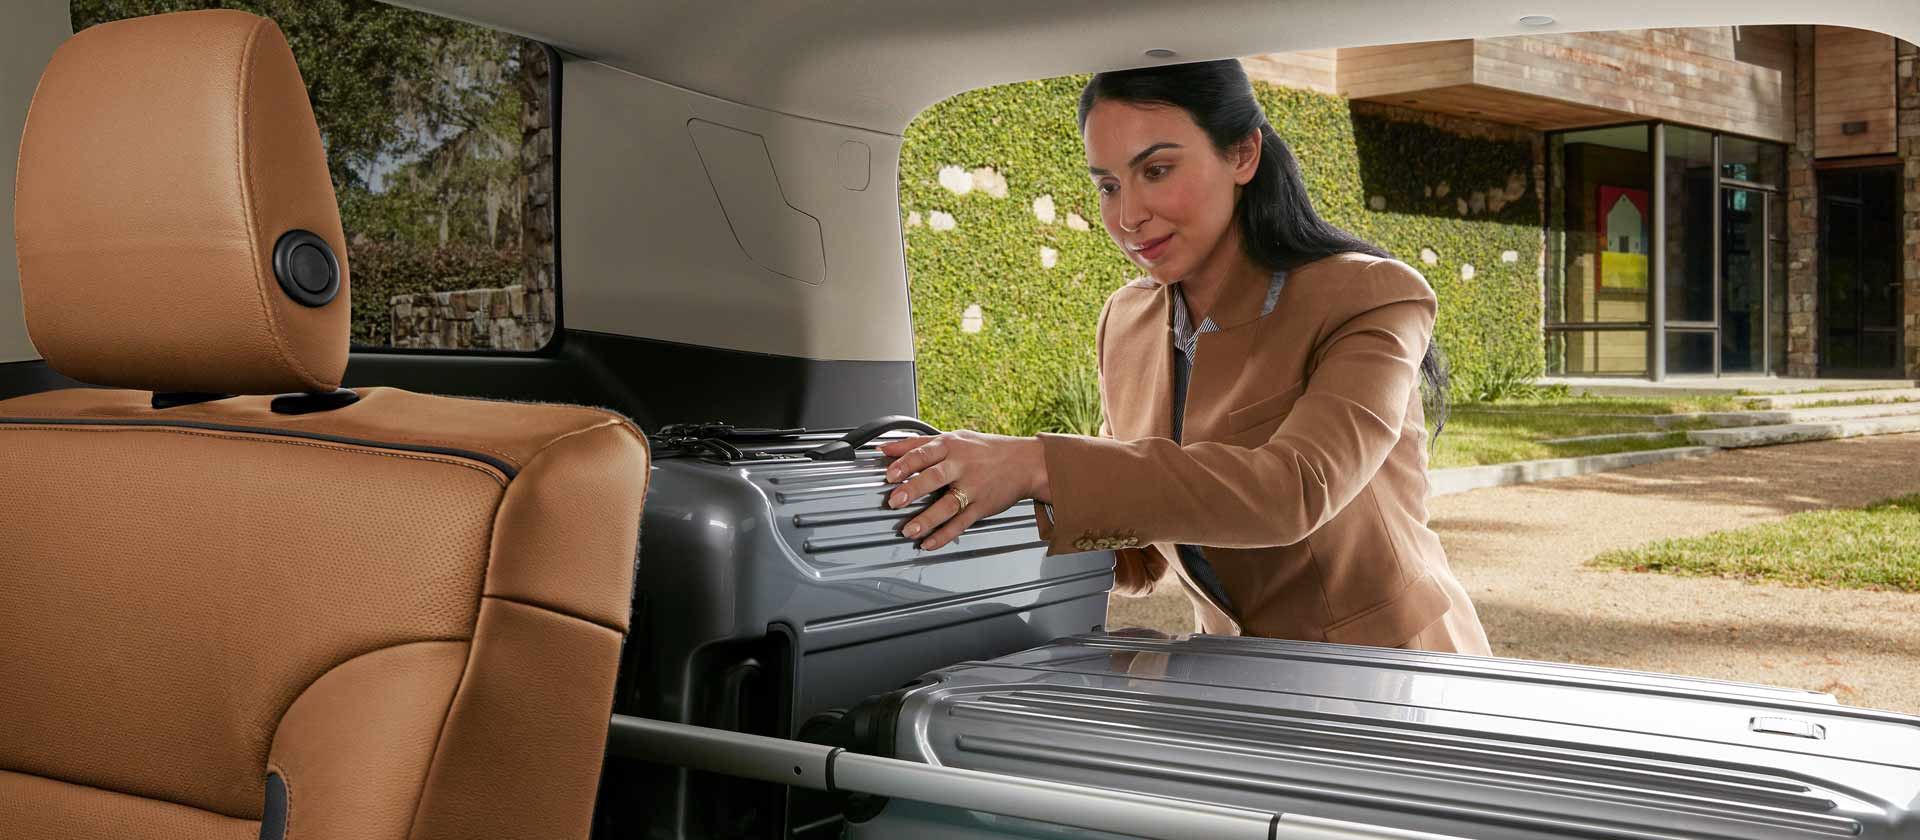 Convenient Storage in the 2019 Acadia